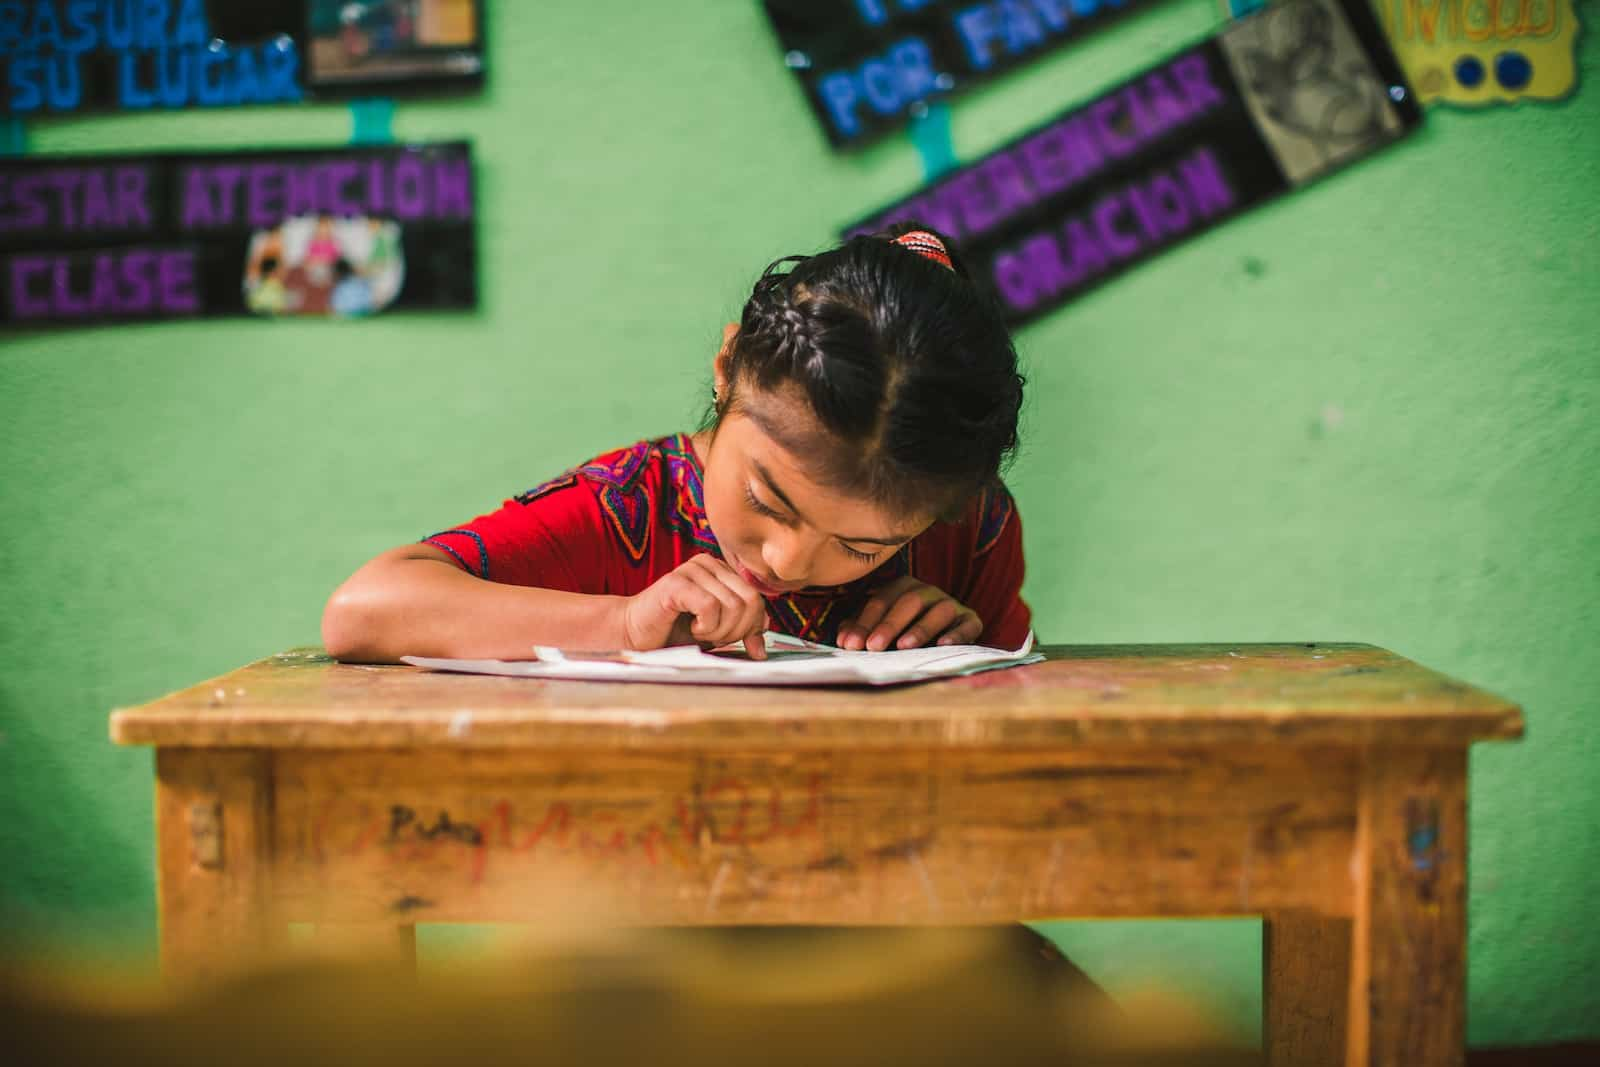 A girl from Guatemala in a red shirt with her hair pulled back sits at a wooden school desk, reading a letter. She is in front of a green wall.